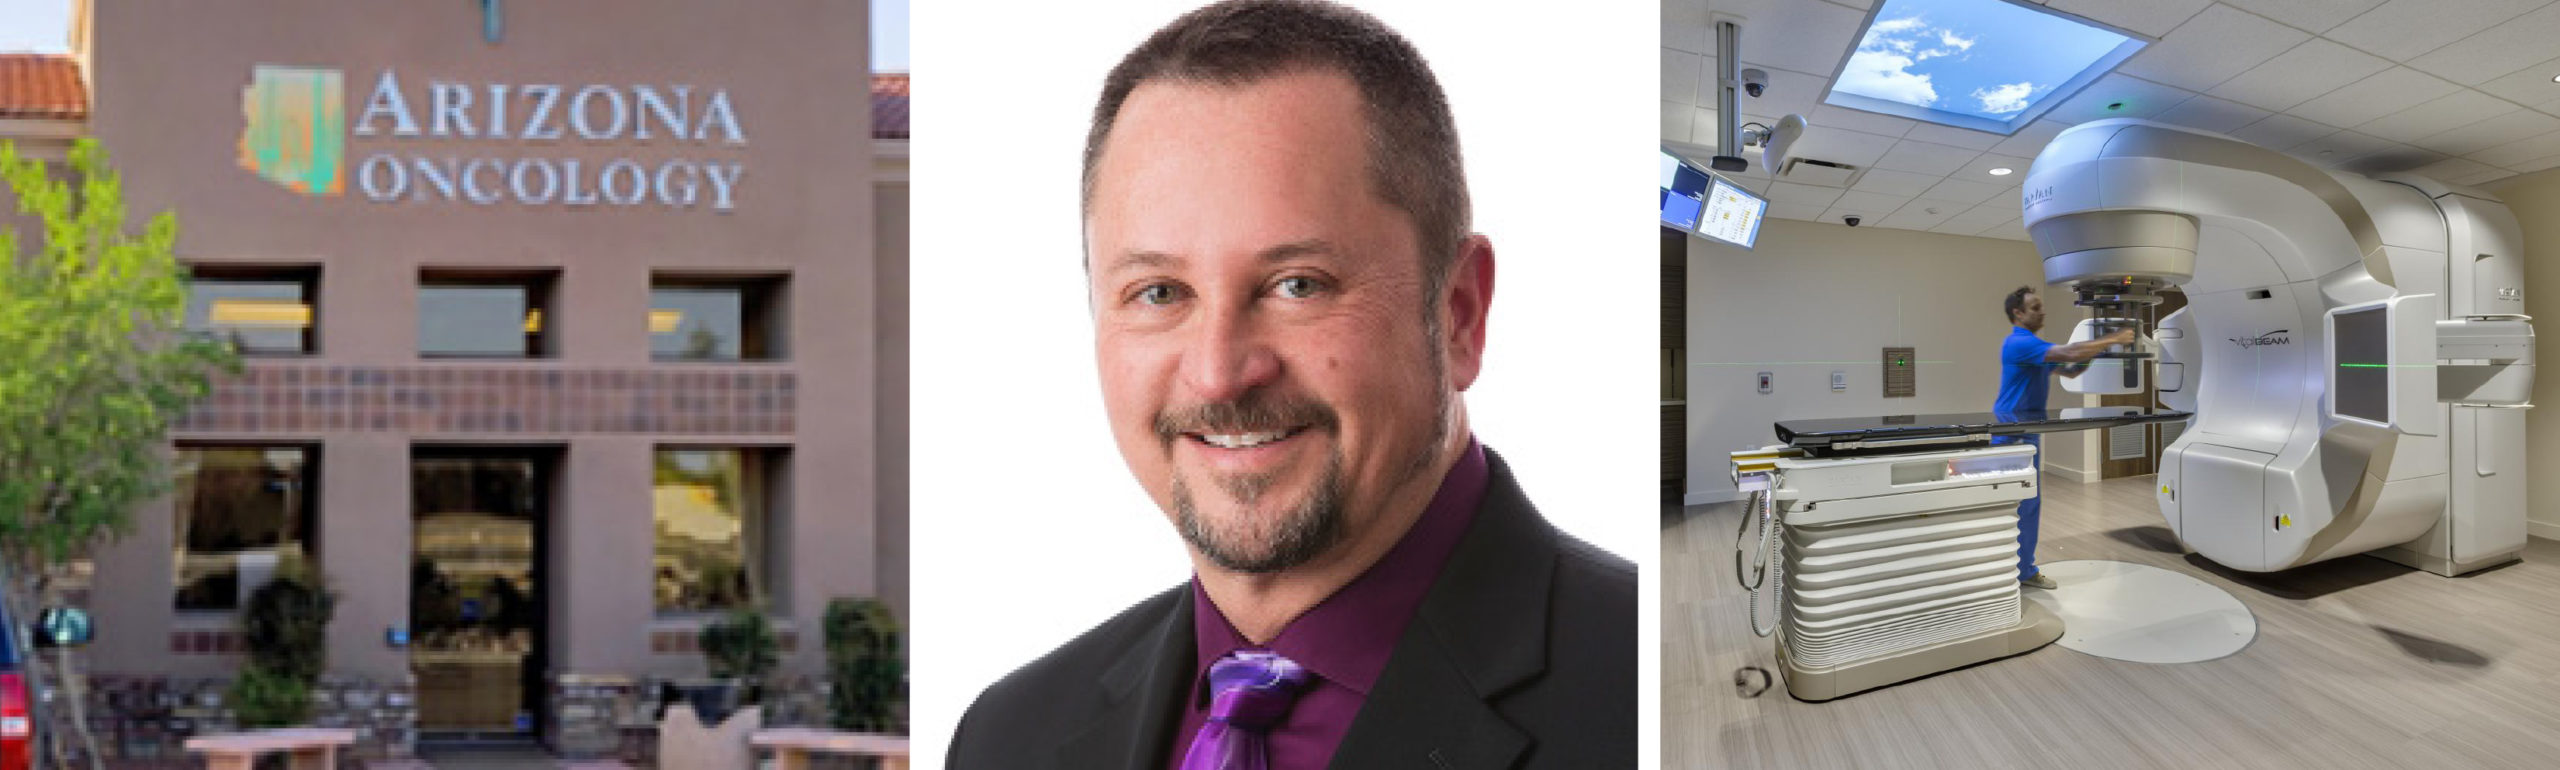 Arizona Oncology – Mike Janicek, MD is one of the best!